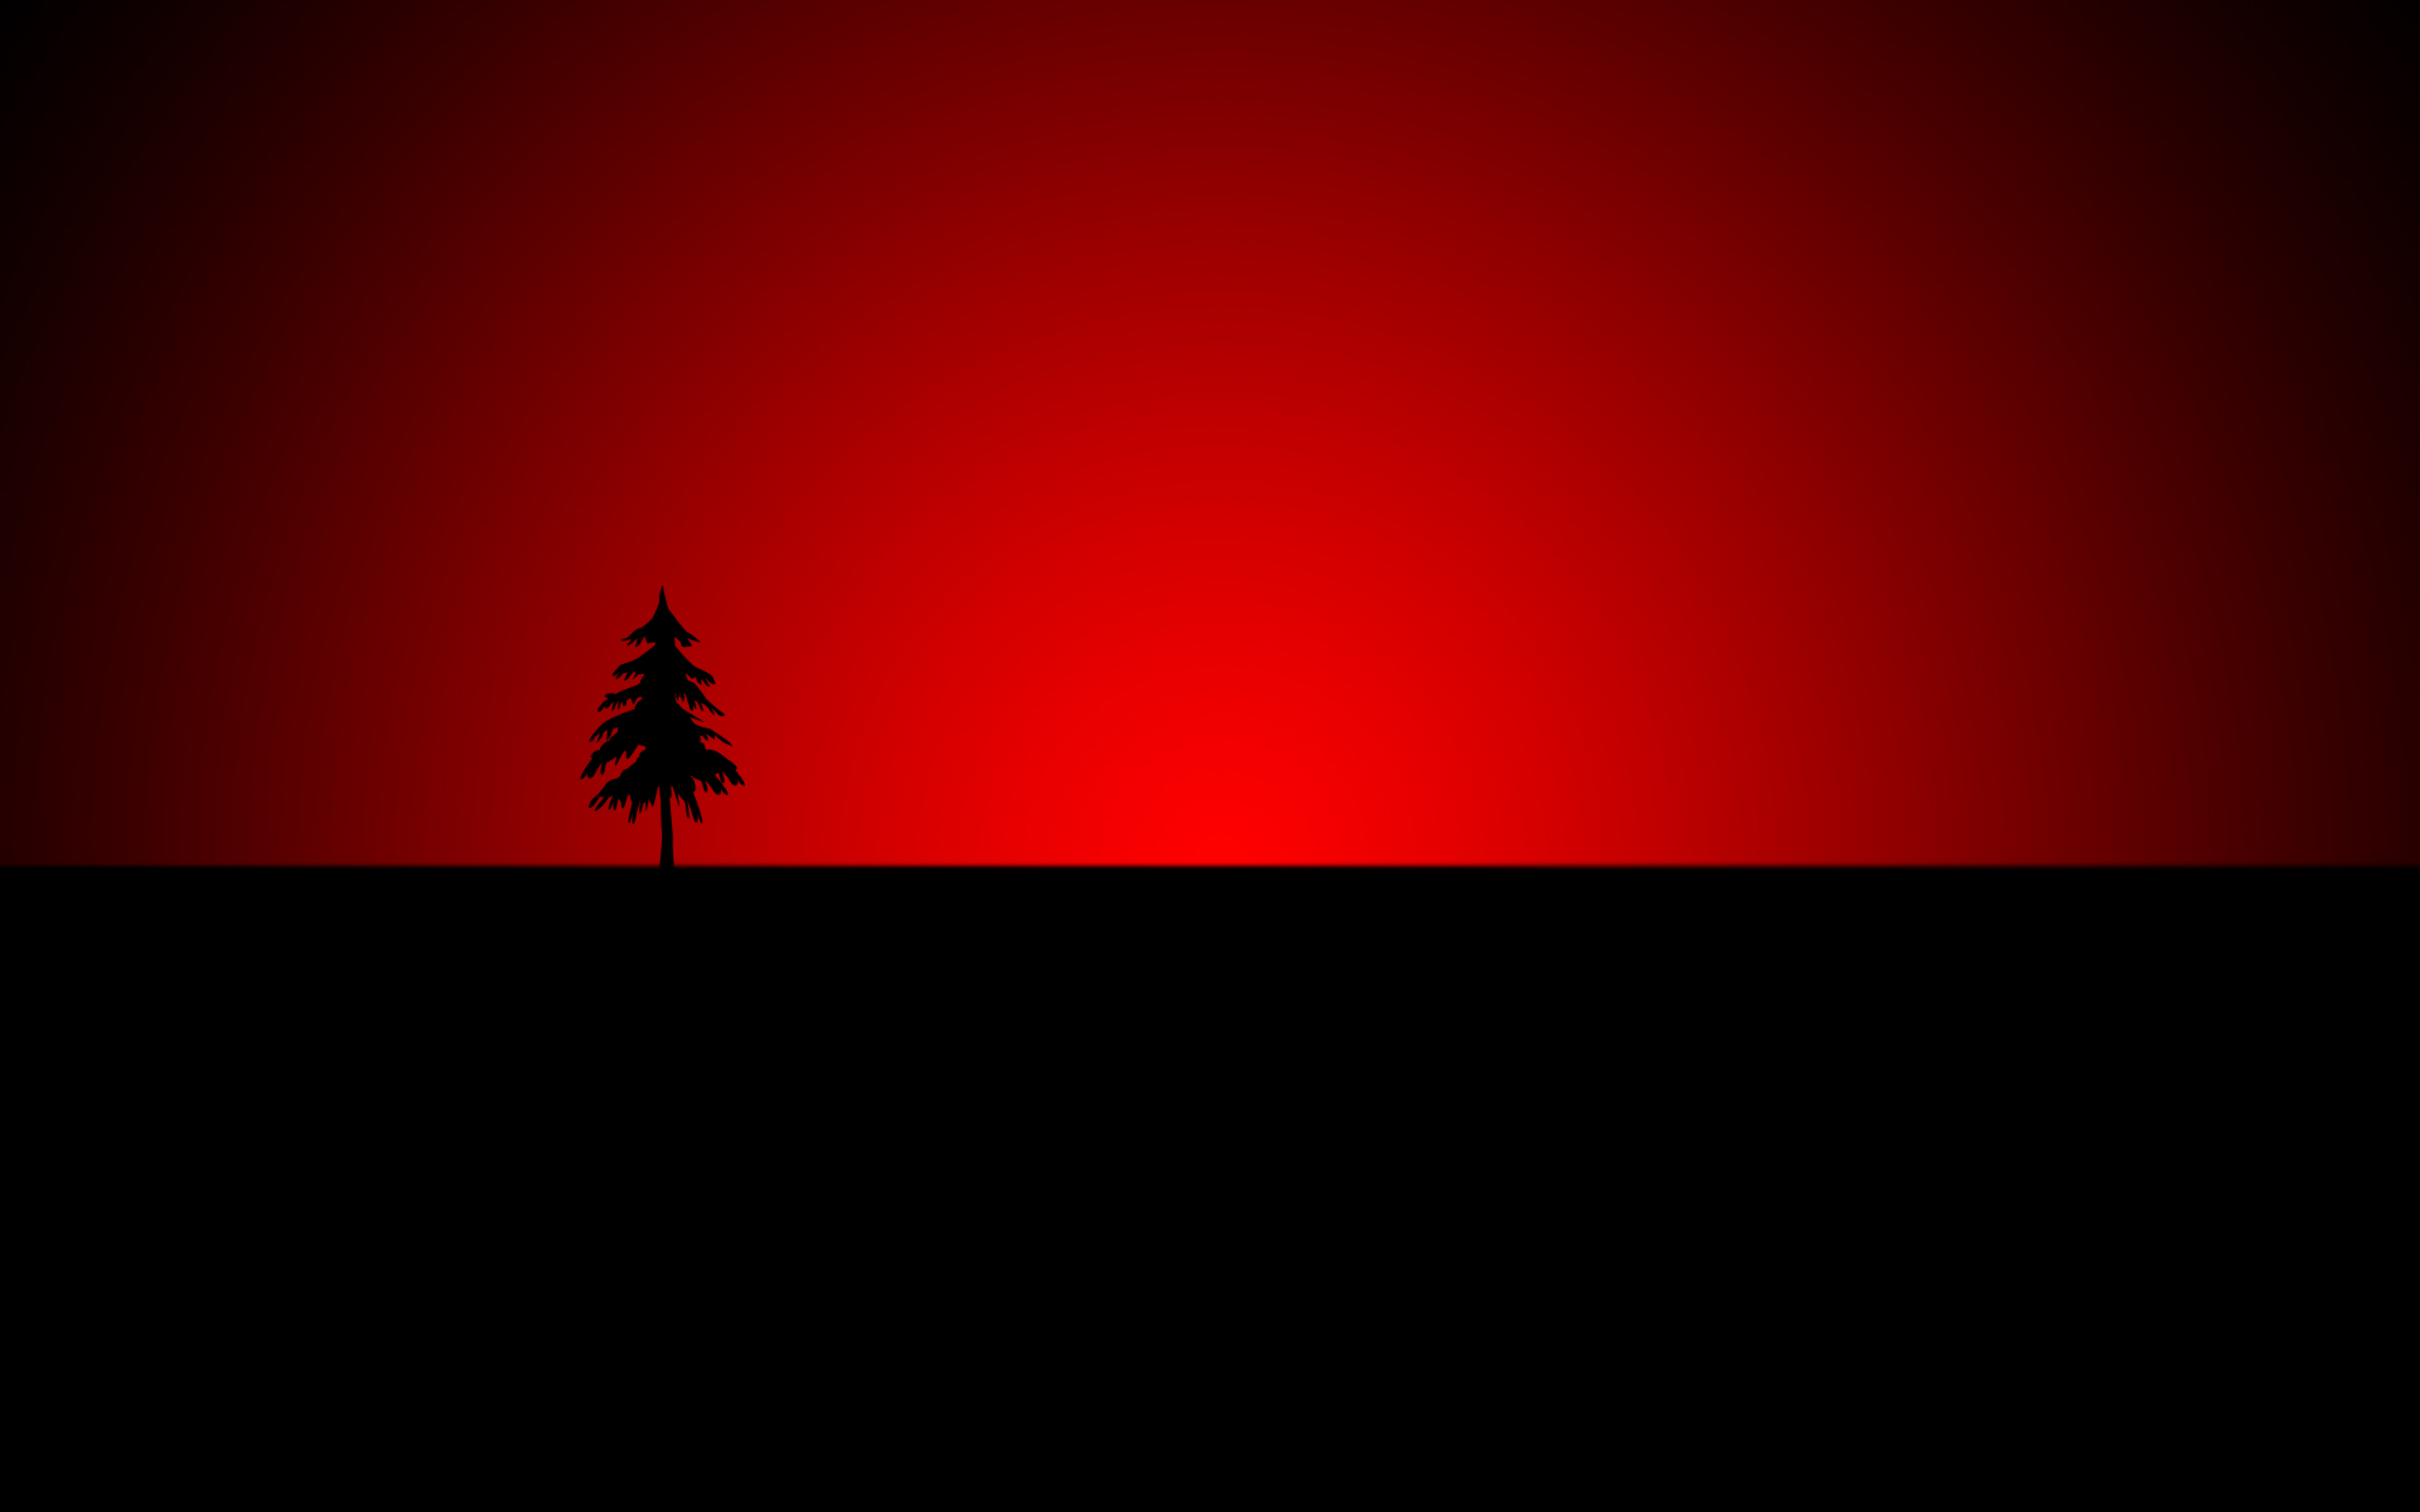 red and black background picture 1 high resolution